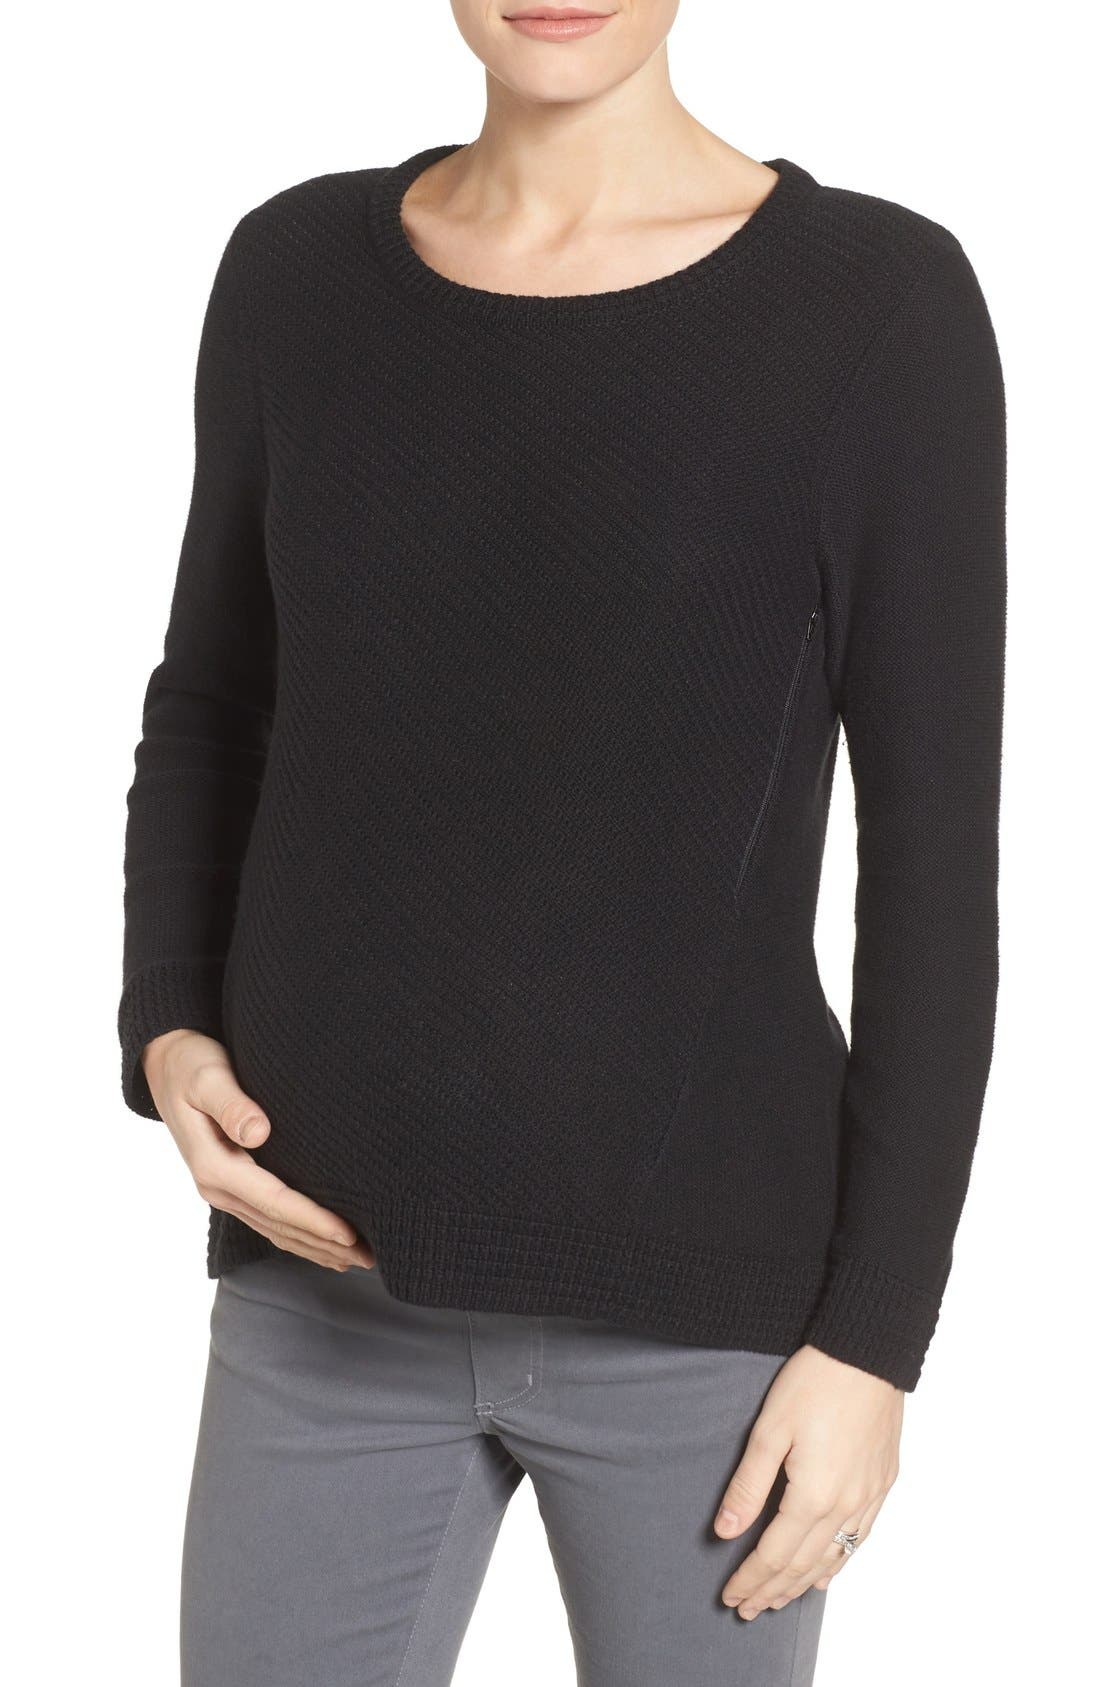 Wiley Maternity/Nursing Sweatshirt,                         Main,                         color, BLACK